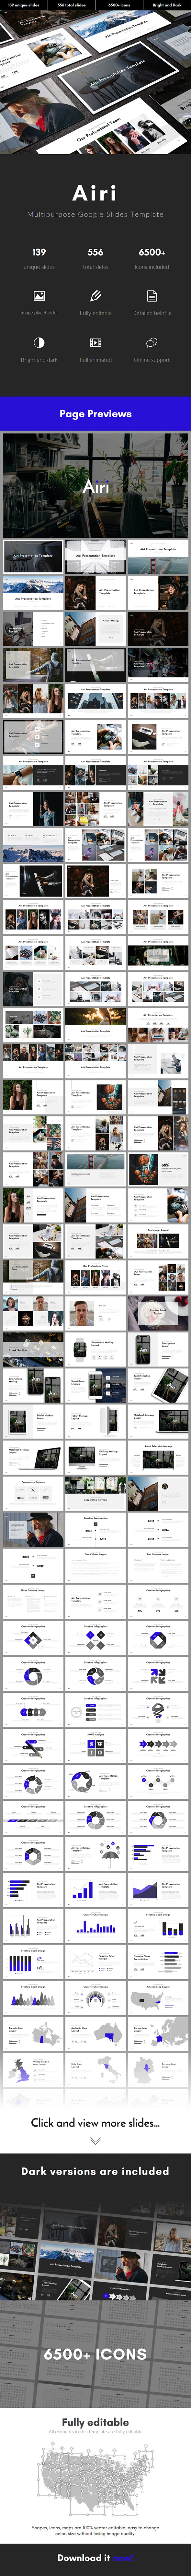 Airi Multipurpose Google Slides Template - Google Slides Presentation Templates